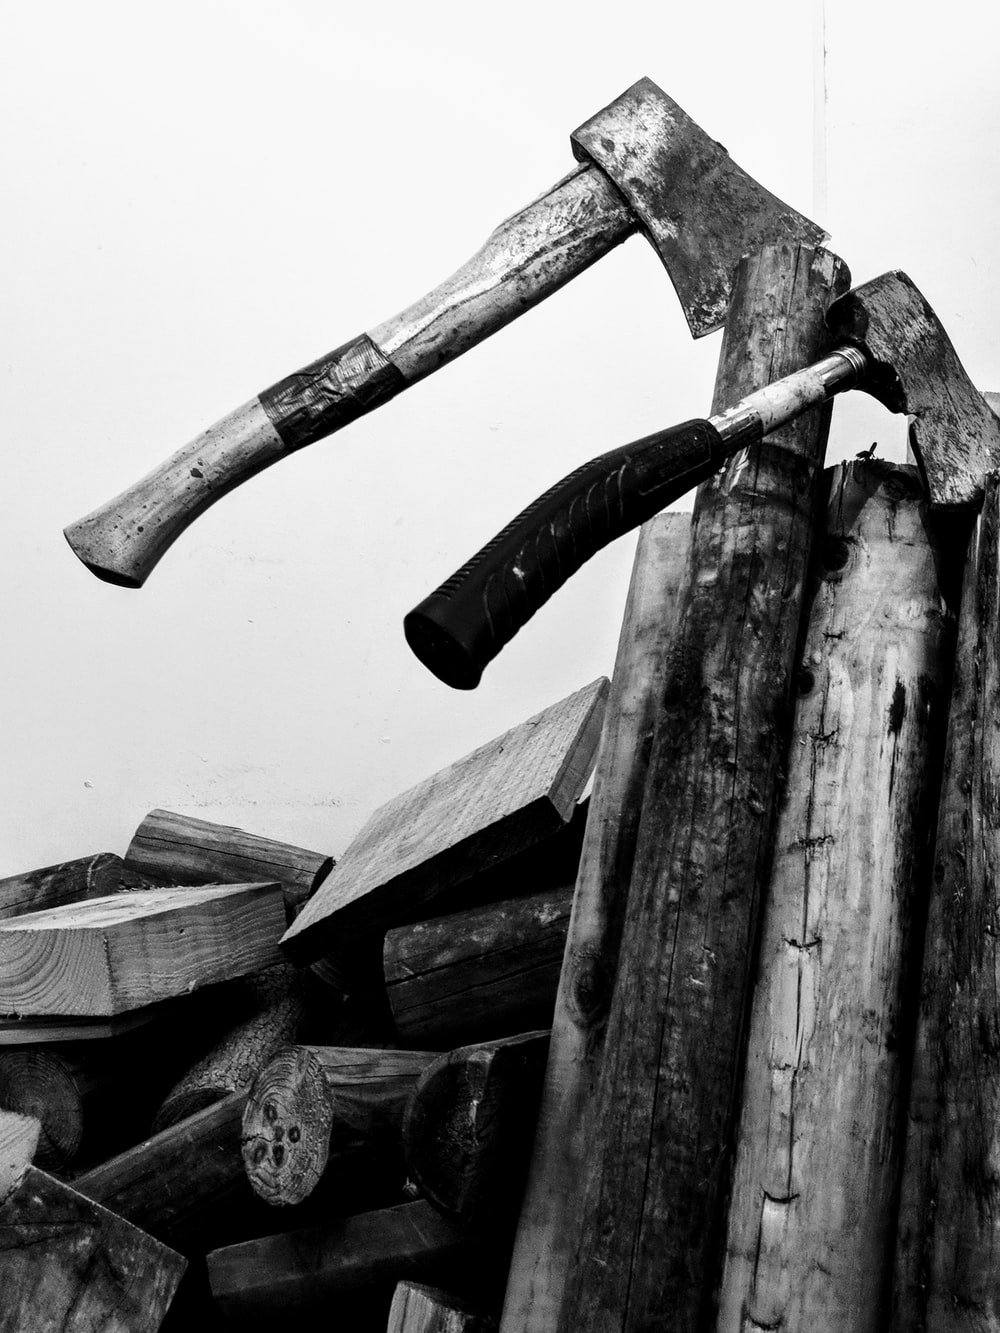 axe on wood